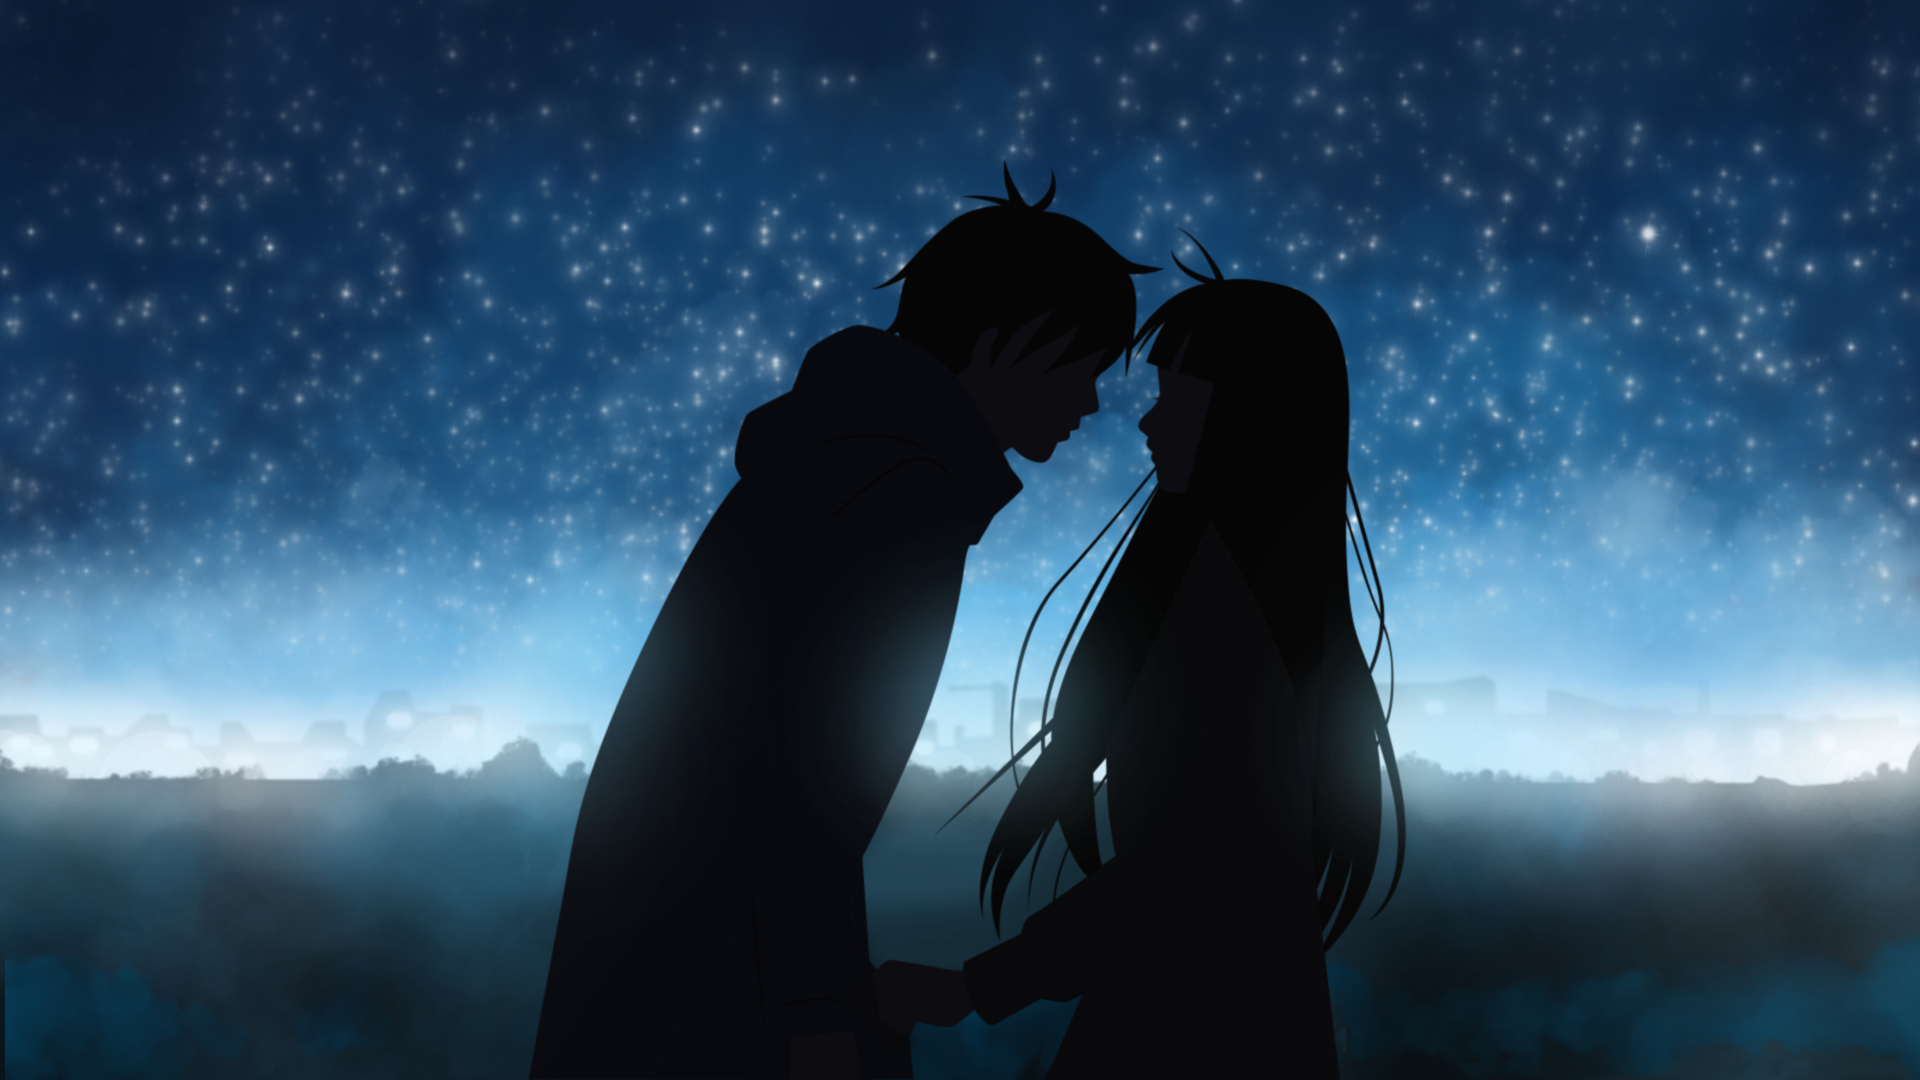 Anime love wallpapers for desktop wallpapersafari - Wallpaper computer anime ...